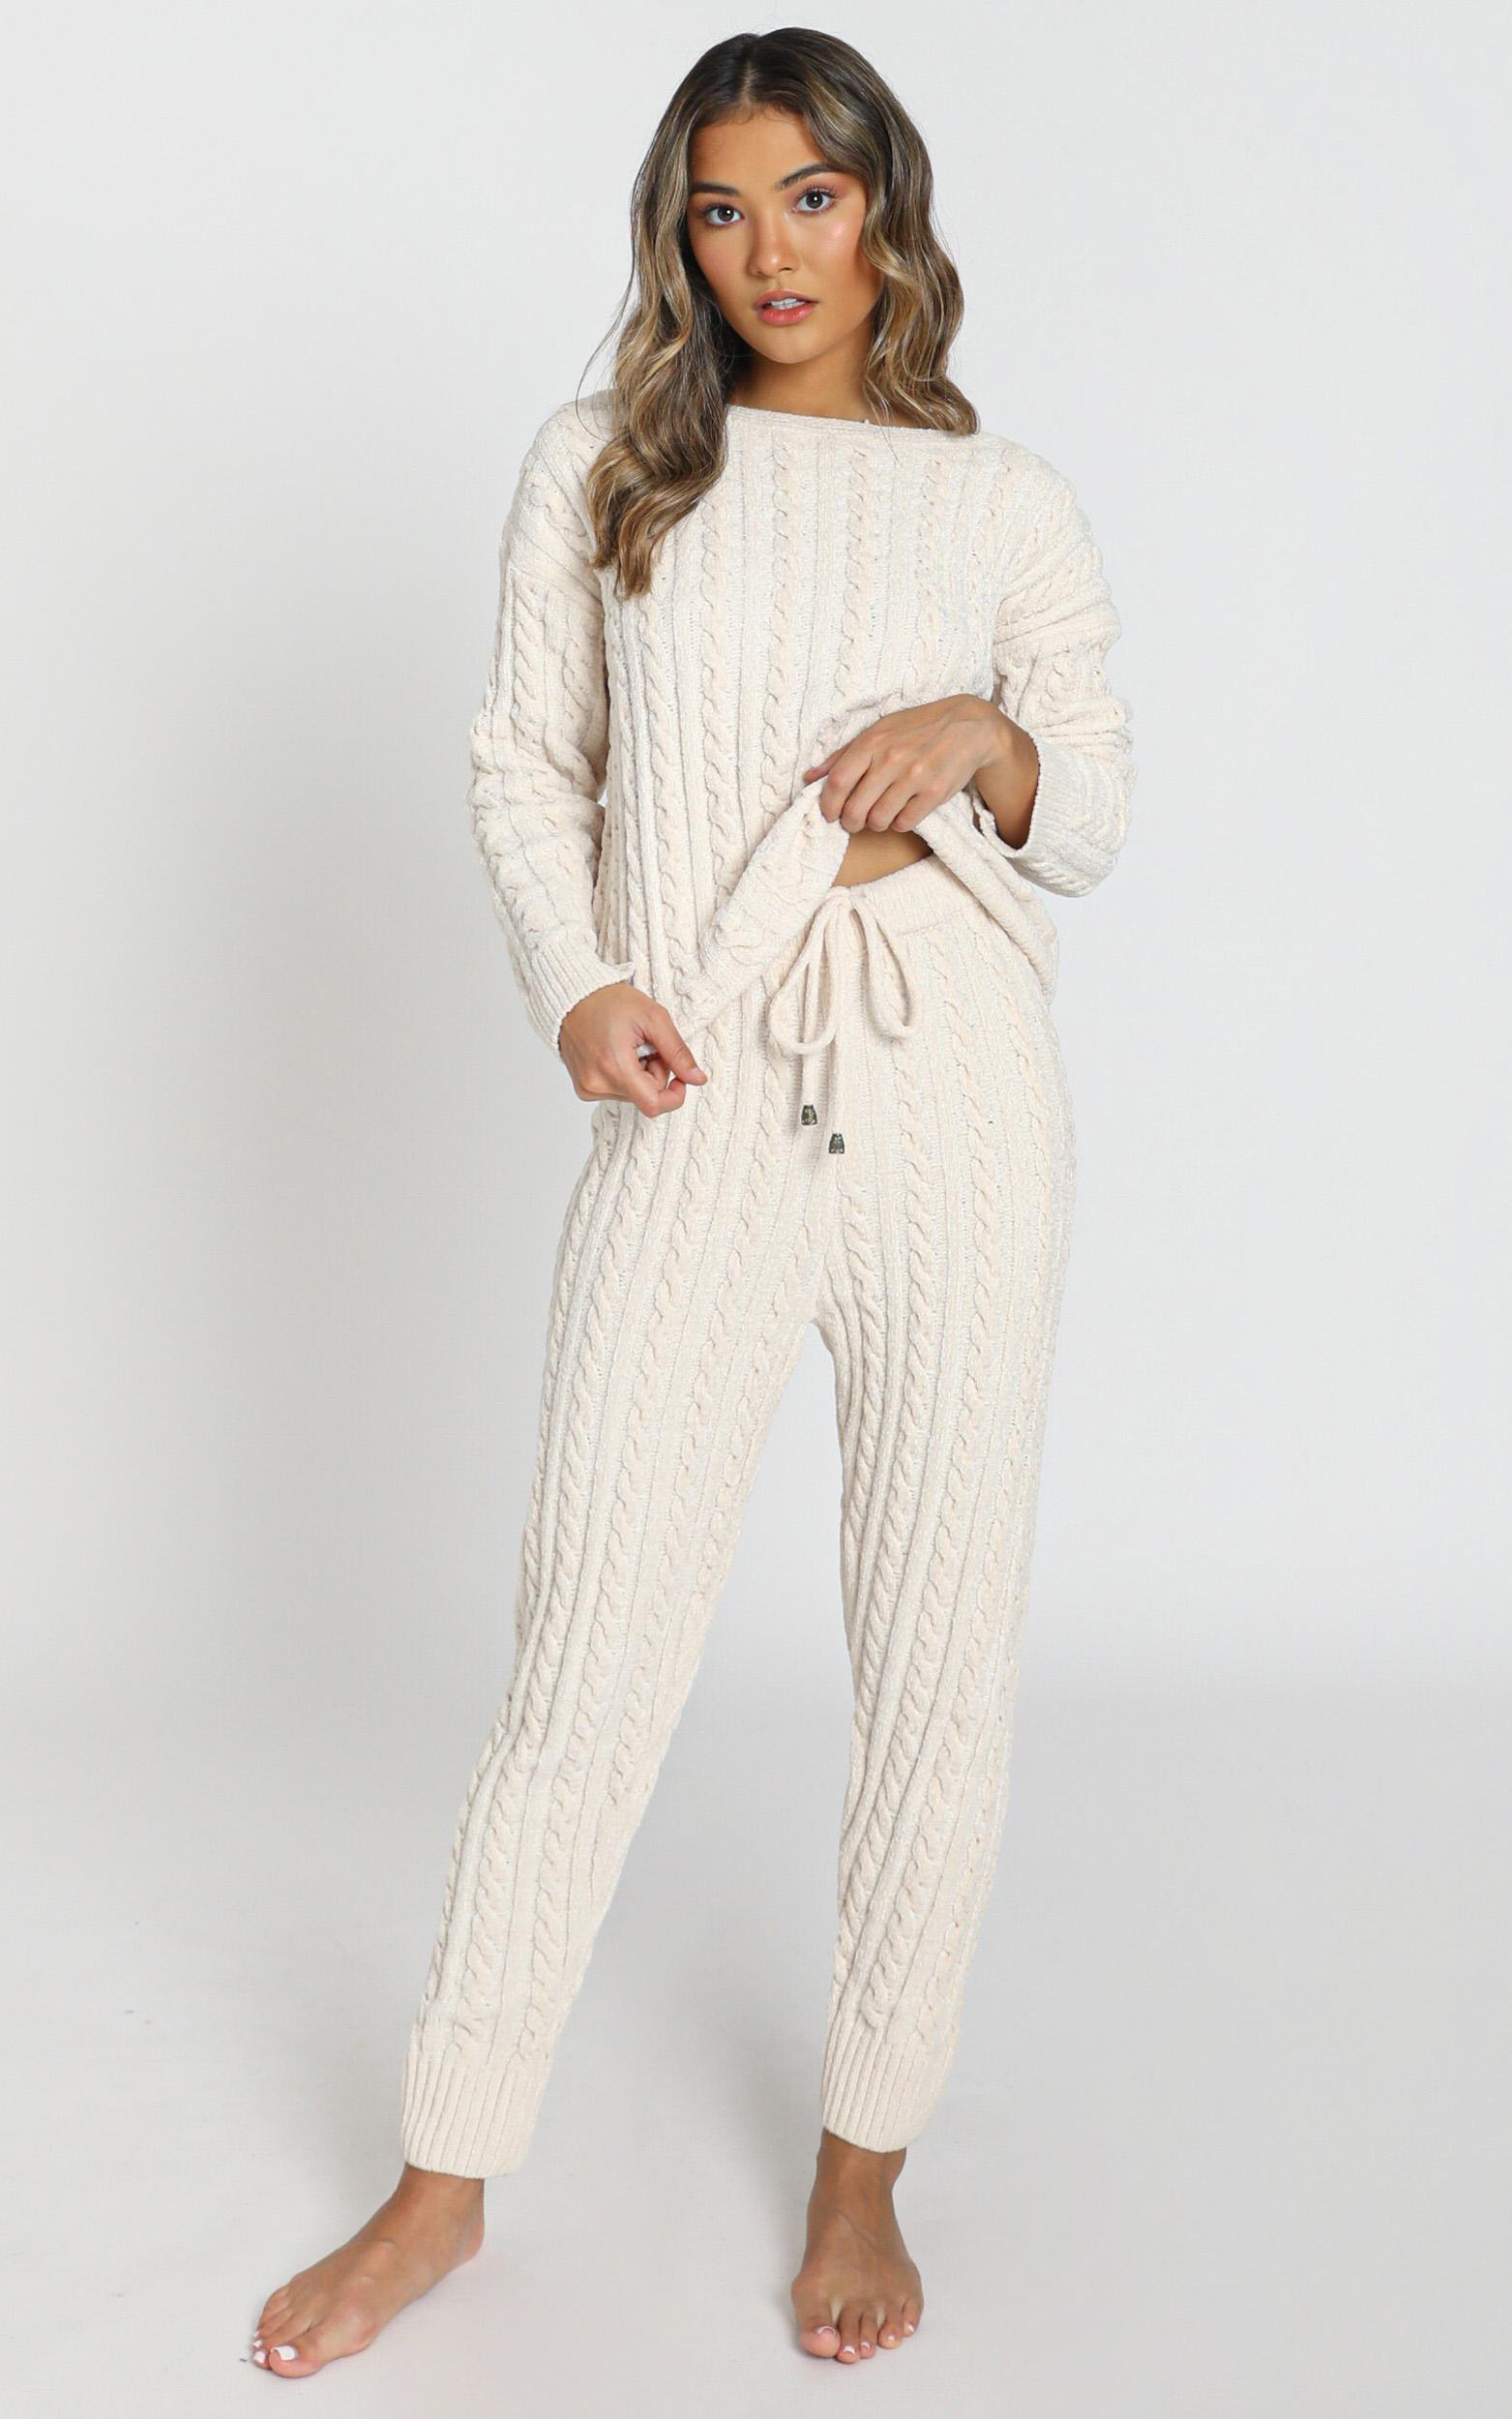 Iona Cable Knit Two Piece Set in cream - S, Cream, hi-res image number null